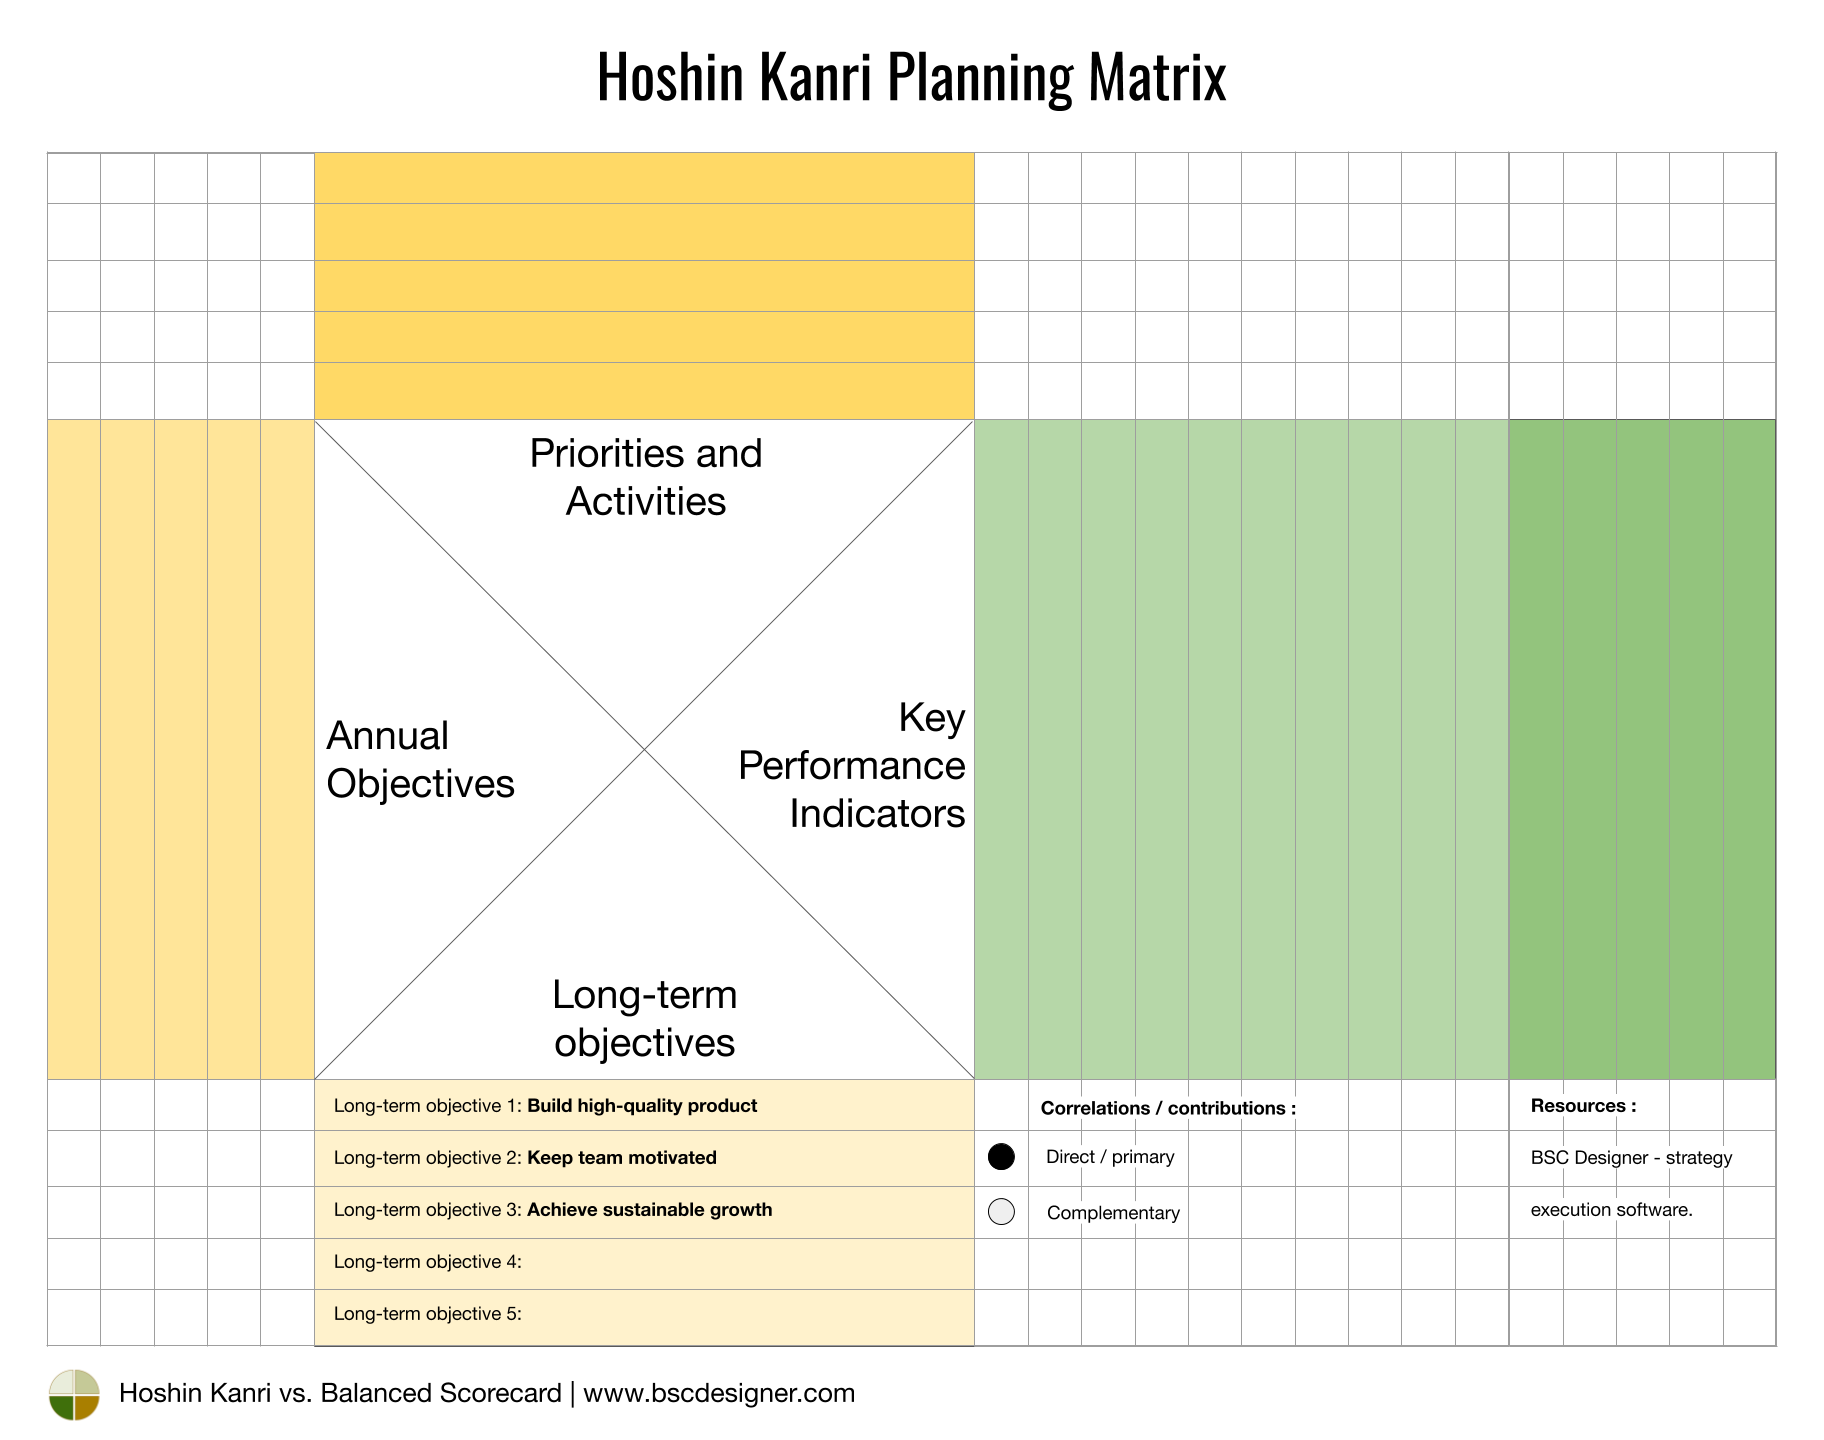 Hoshin Kanri Matrix - Long term goals